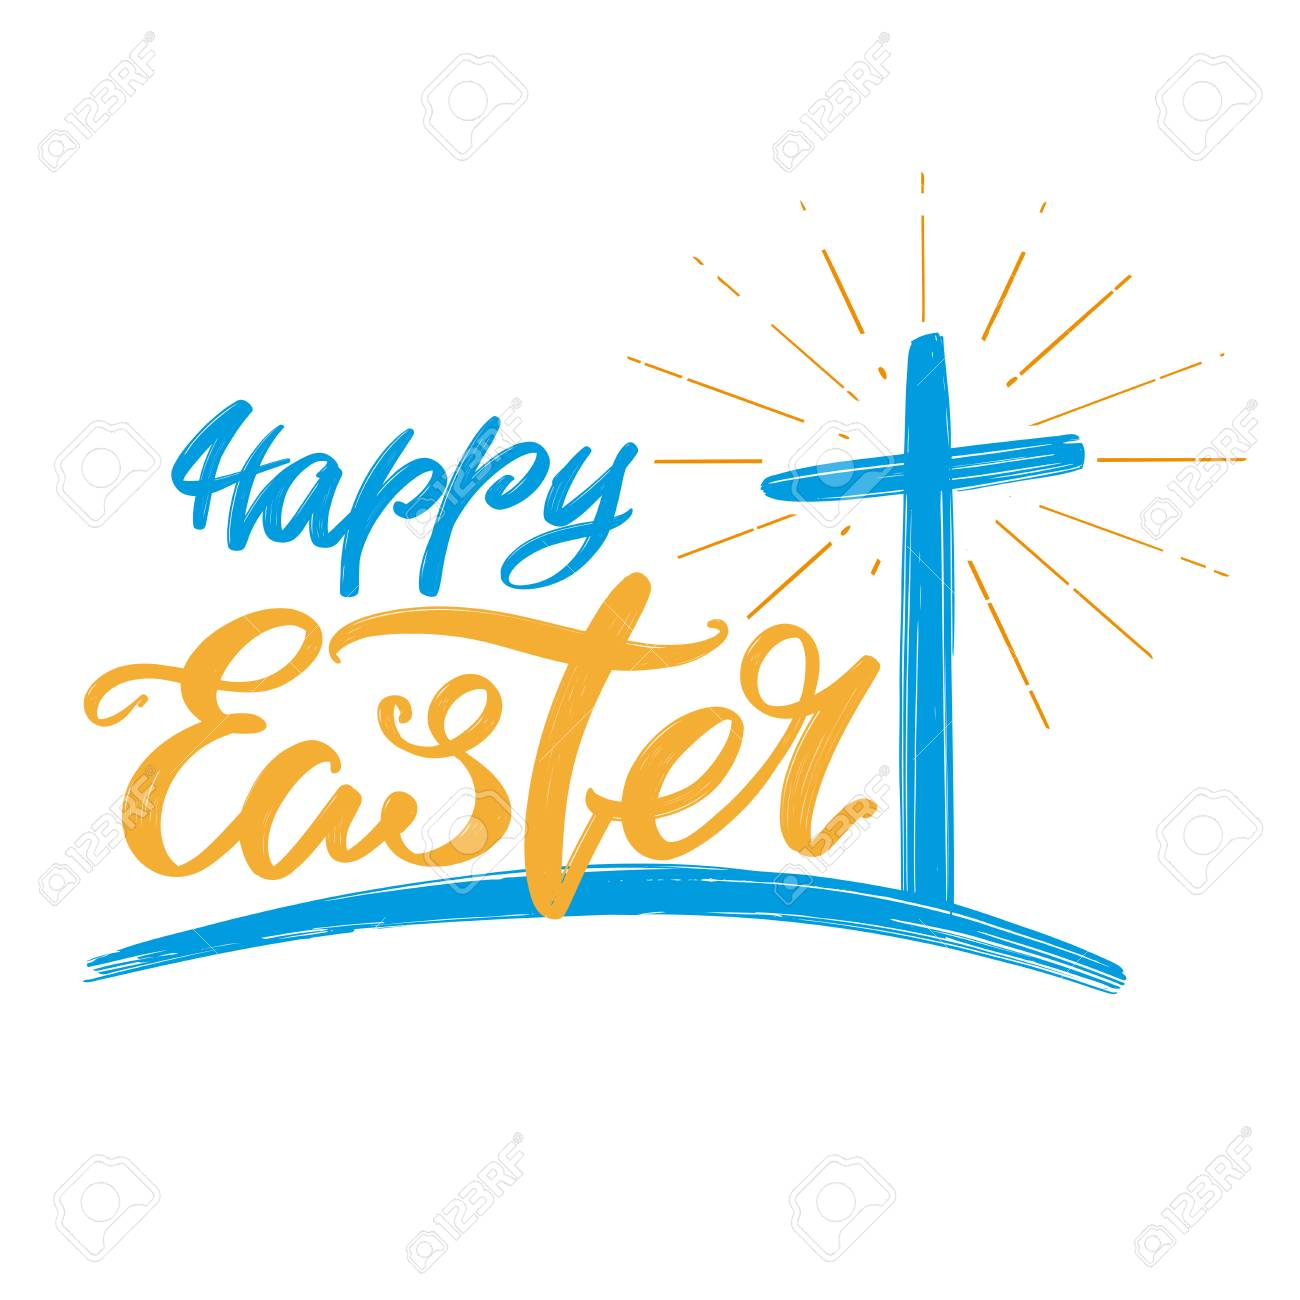 Happy Easter Holiday Religious Calligraphic Text Cross Symbol